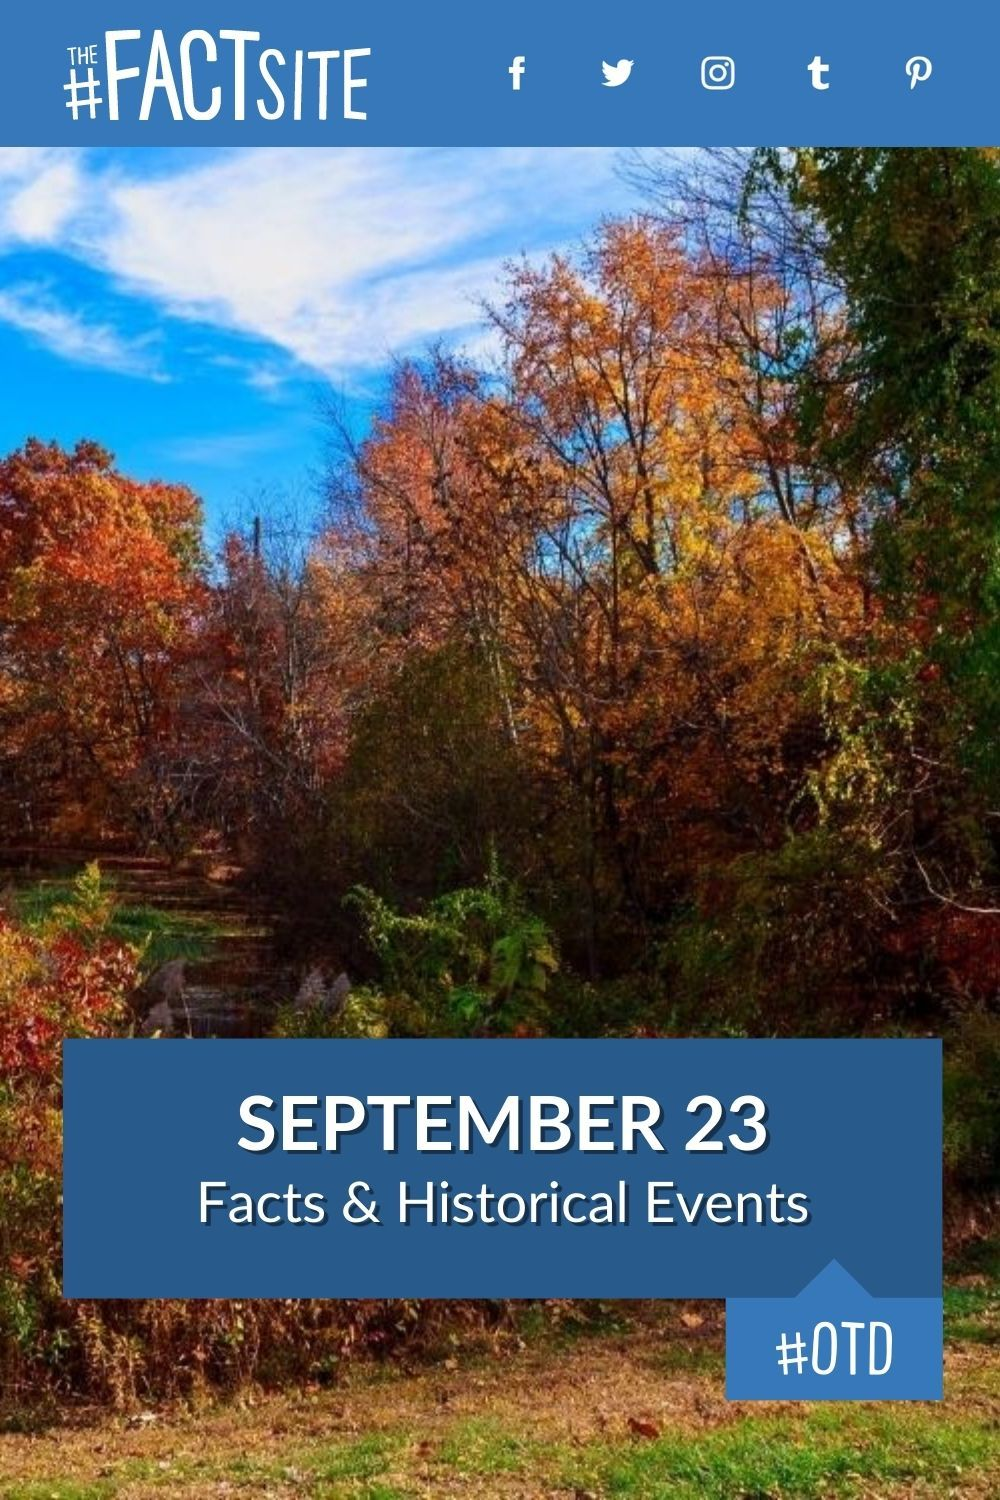 Facts & Historic Events That Happened on September 23